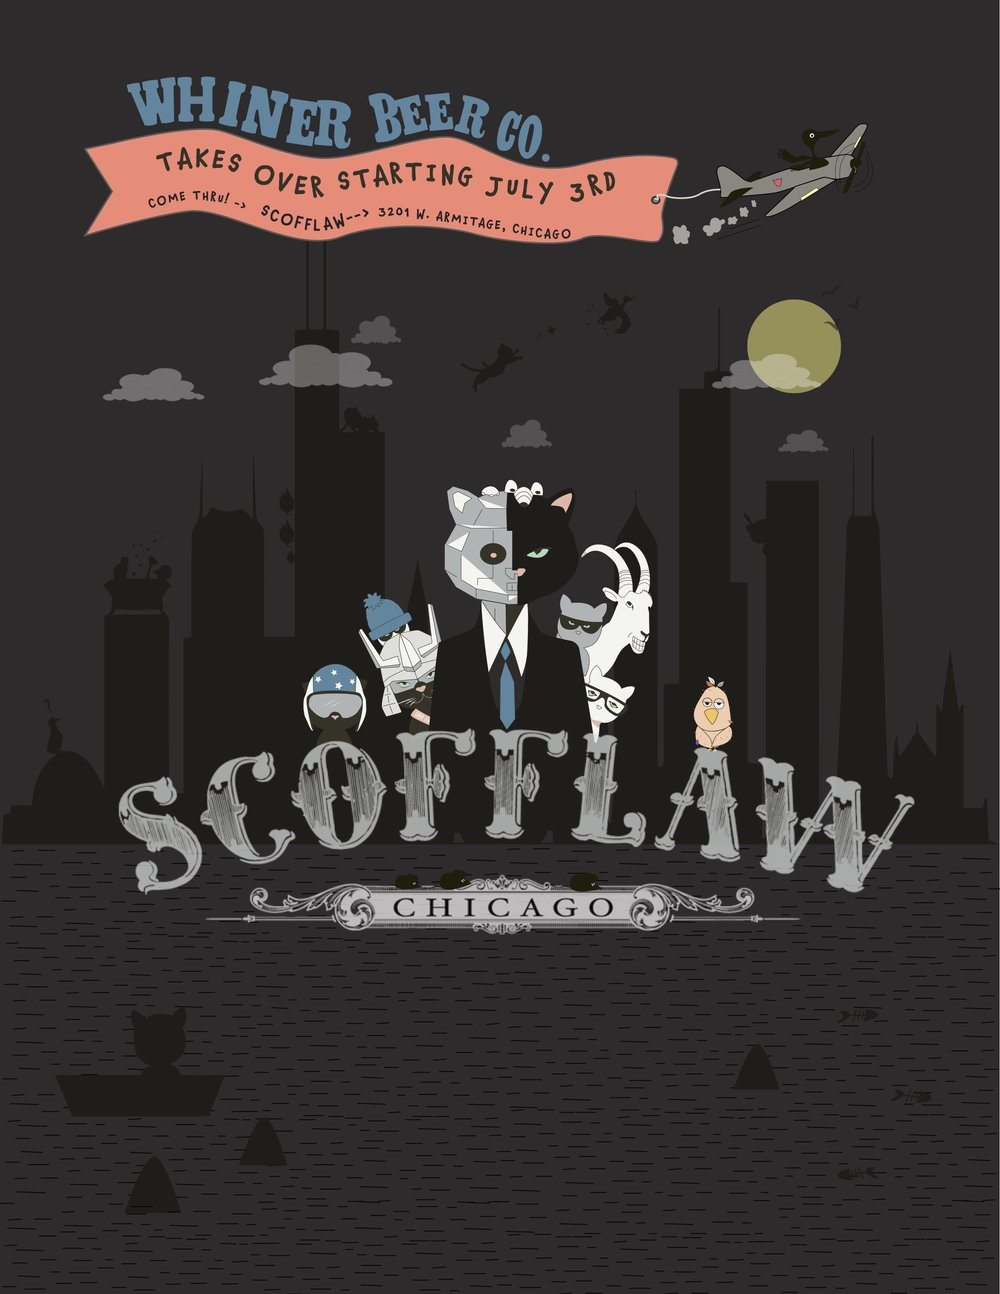 scofflaw and whiner.jpg